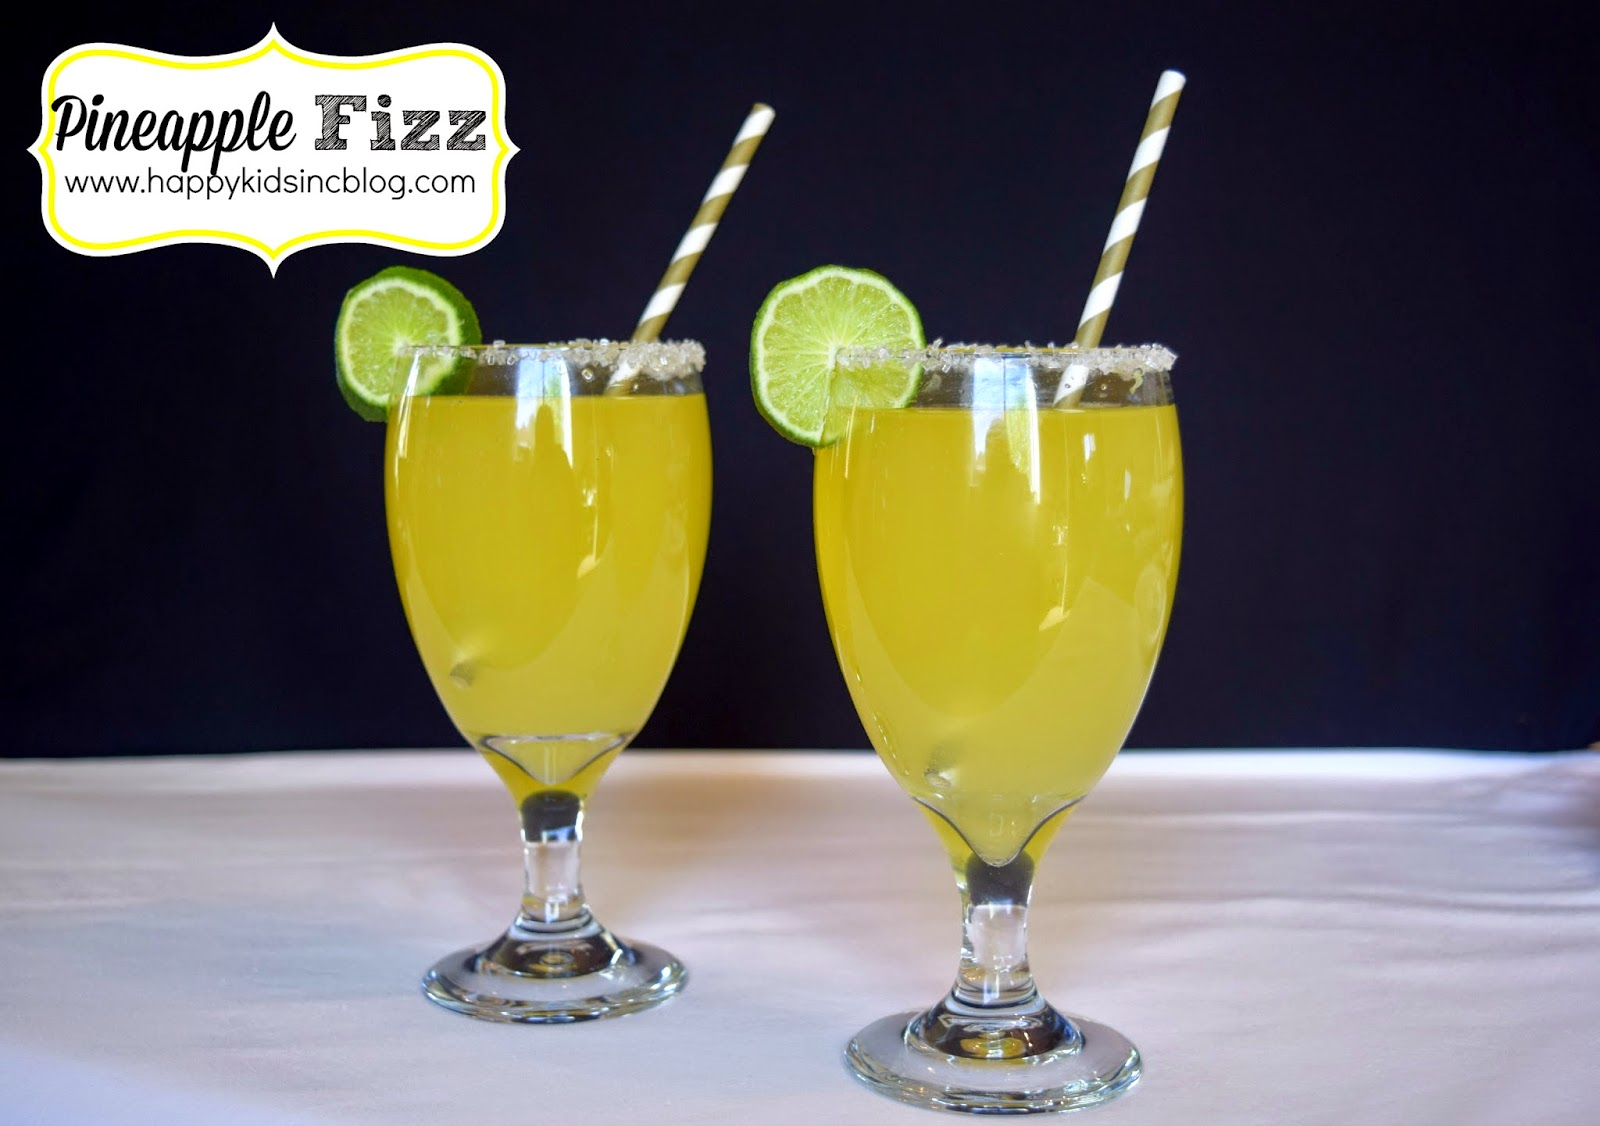 Pineapple Fizz Mocktail Made With Delicious Organic Non-GMO Veri Soda